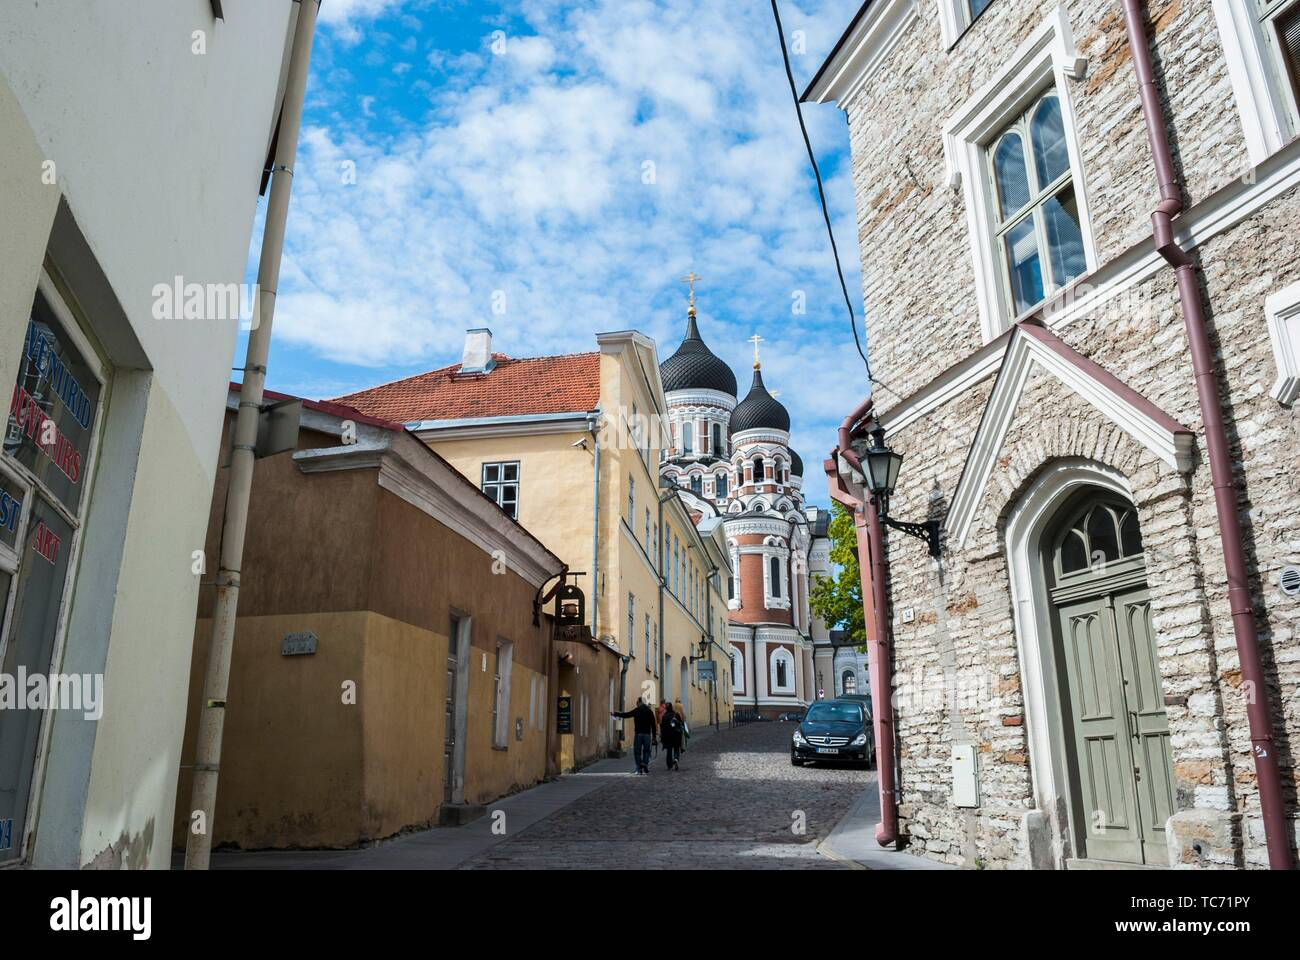 Street in Old Town with Alexander Nevsky Cathedral in the background. Toompea Hill, Tallinn, Estonia, Baltic States. Stock Photo